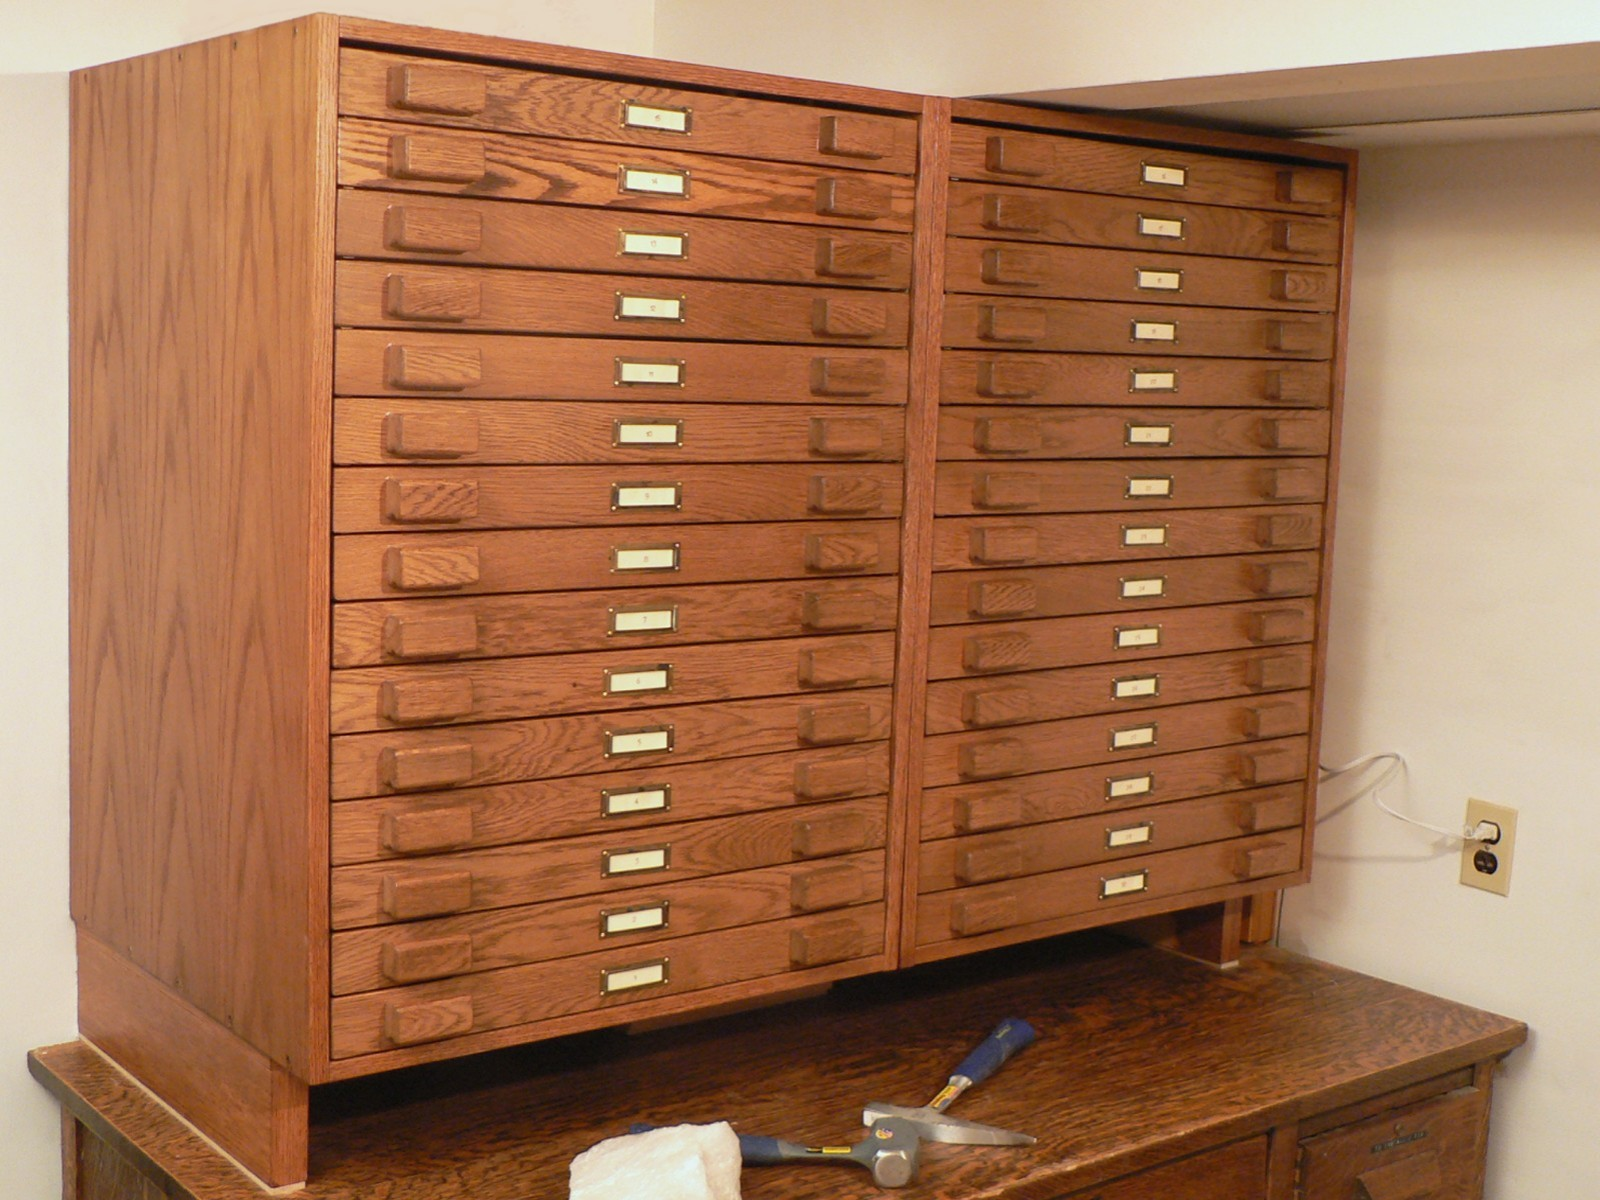 A Rock and Mineral Cabinet: Tips for Building the Cabinet and Drawers